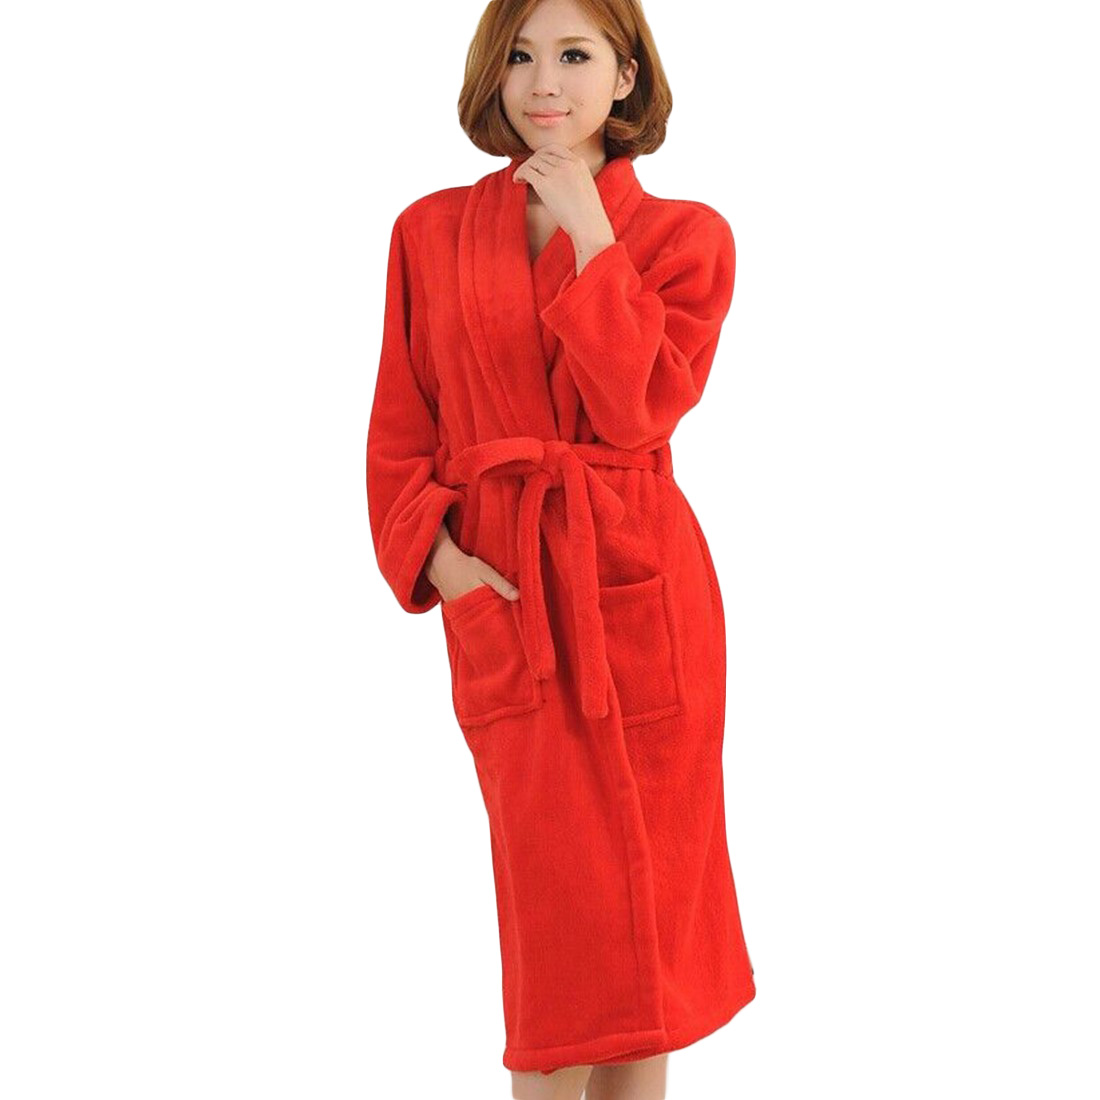 promotion moderate cost compare price US $22.18 15% OFF|Autumn Unisex Fashion Sleepwear Winter Lovers Night robe  Cotton Housecoat Womens Or Men's Coral Fleece Red Gray Bathrobe-in Robes ...